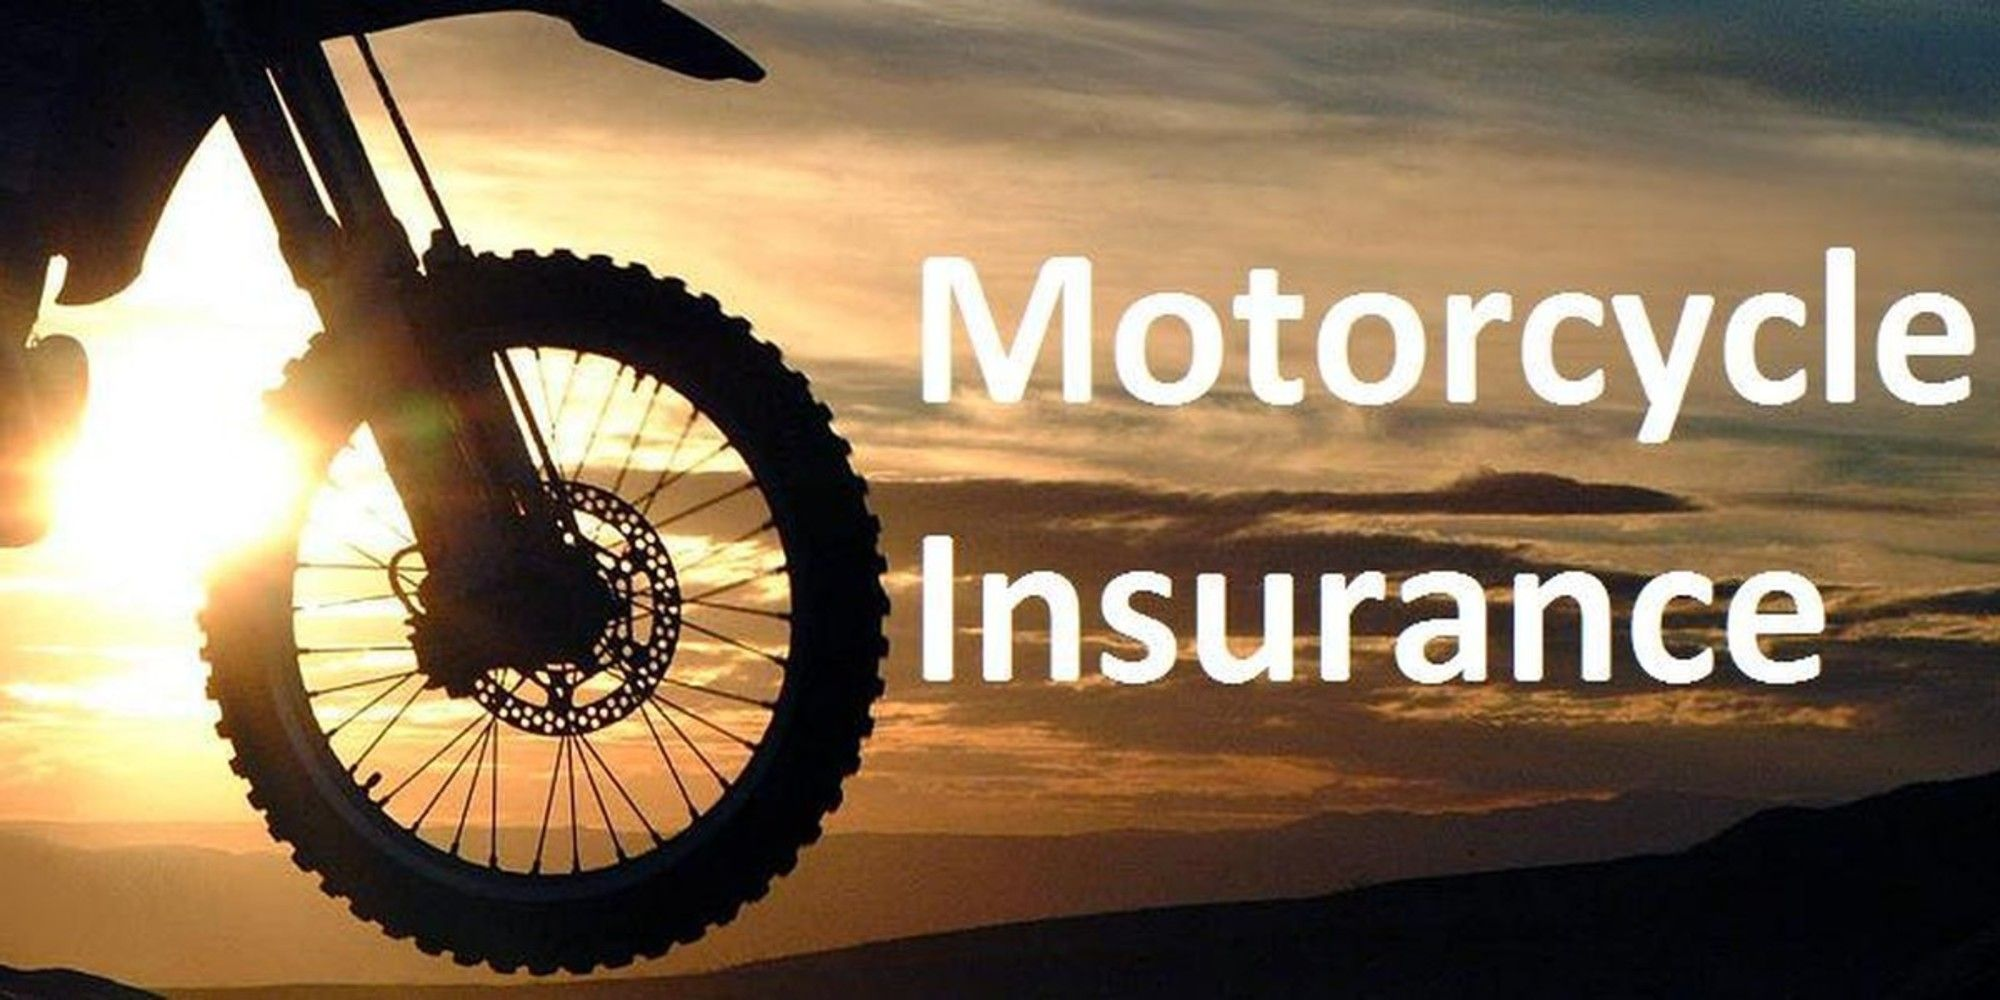 Motorcycle Insurance Quotes Alluring Do You Need Motorcycle Insurance In Colorado  Colorado Motorcycle